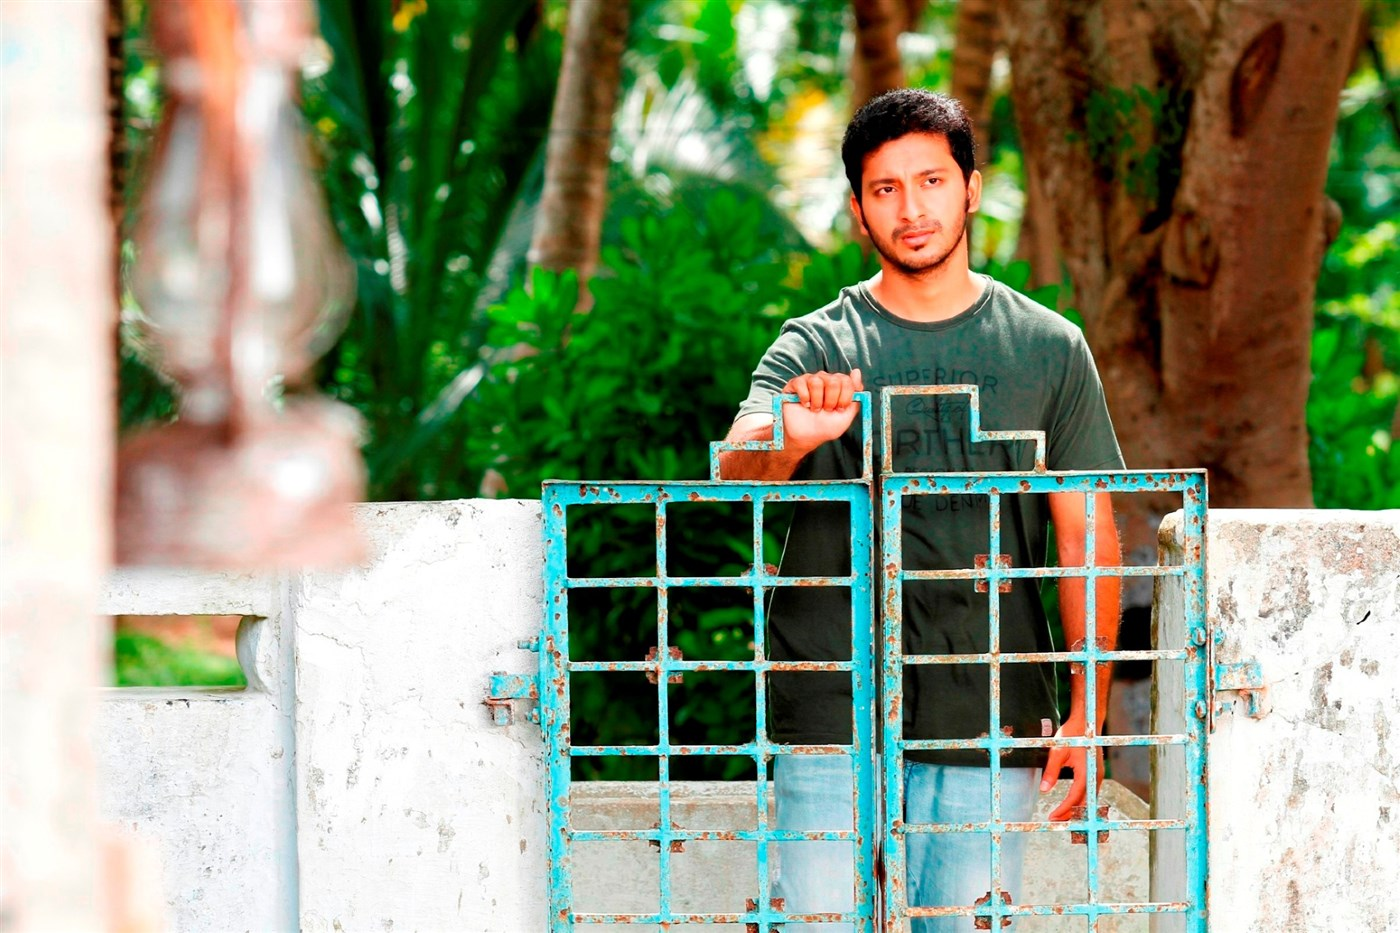 Hero Walter Phillips in Meendum Oru Kadhal Kadhai Movie Stills